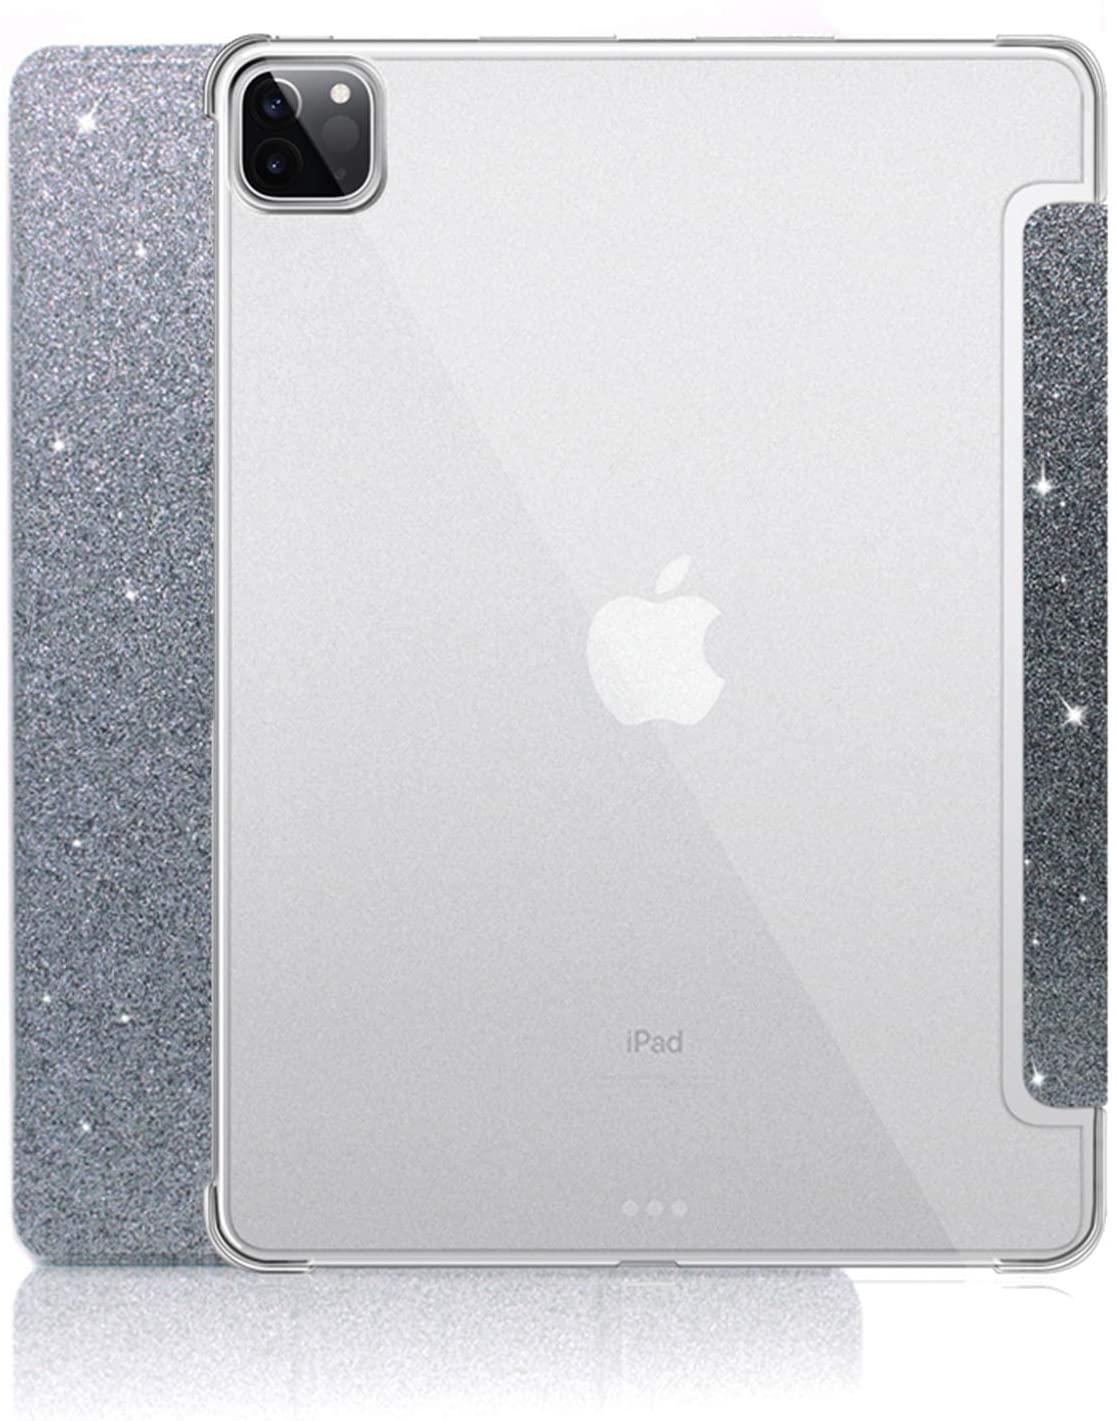 New iPad Pro 11 2020 Glitter Case, Sparkle Leather Ultra Thin Magnetic Leather Smart Protective Cover [Trifold Stand,Sleep Function] for Apple iPad Pro 11 inch 2020(2nd Gen), Glitter-Grey